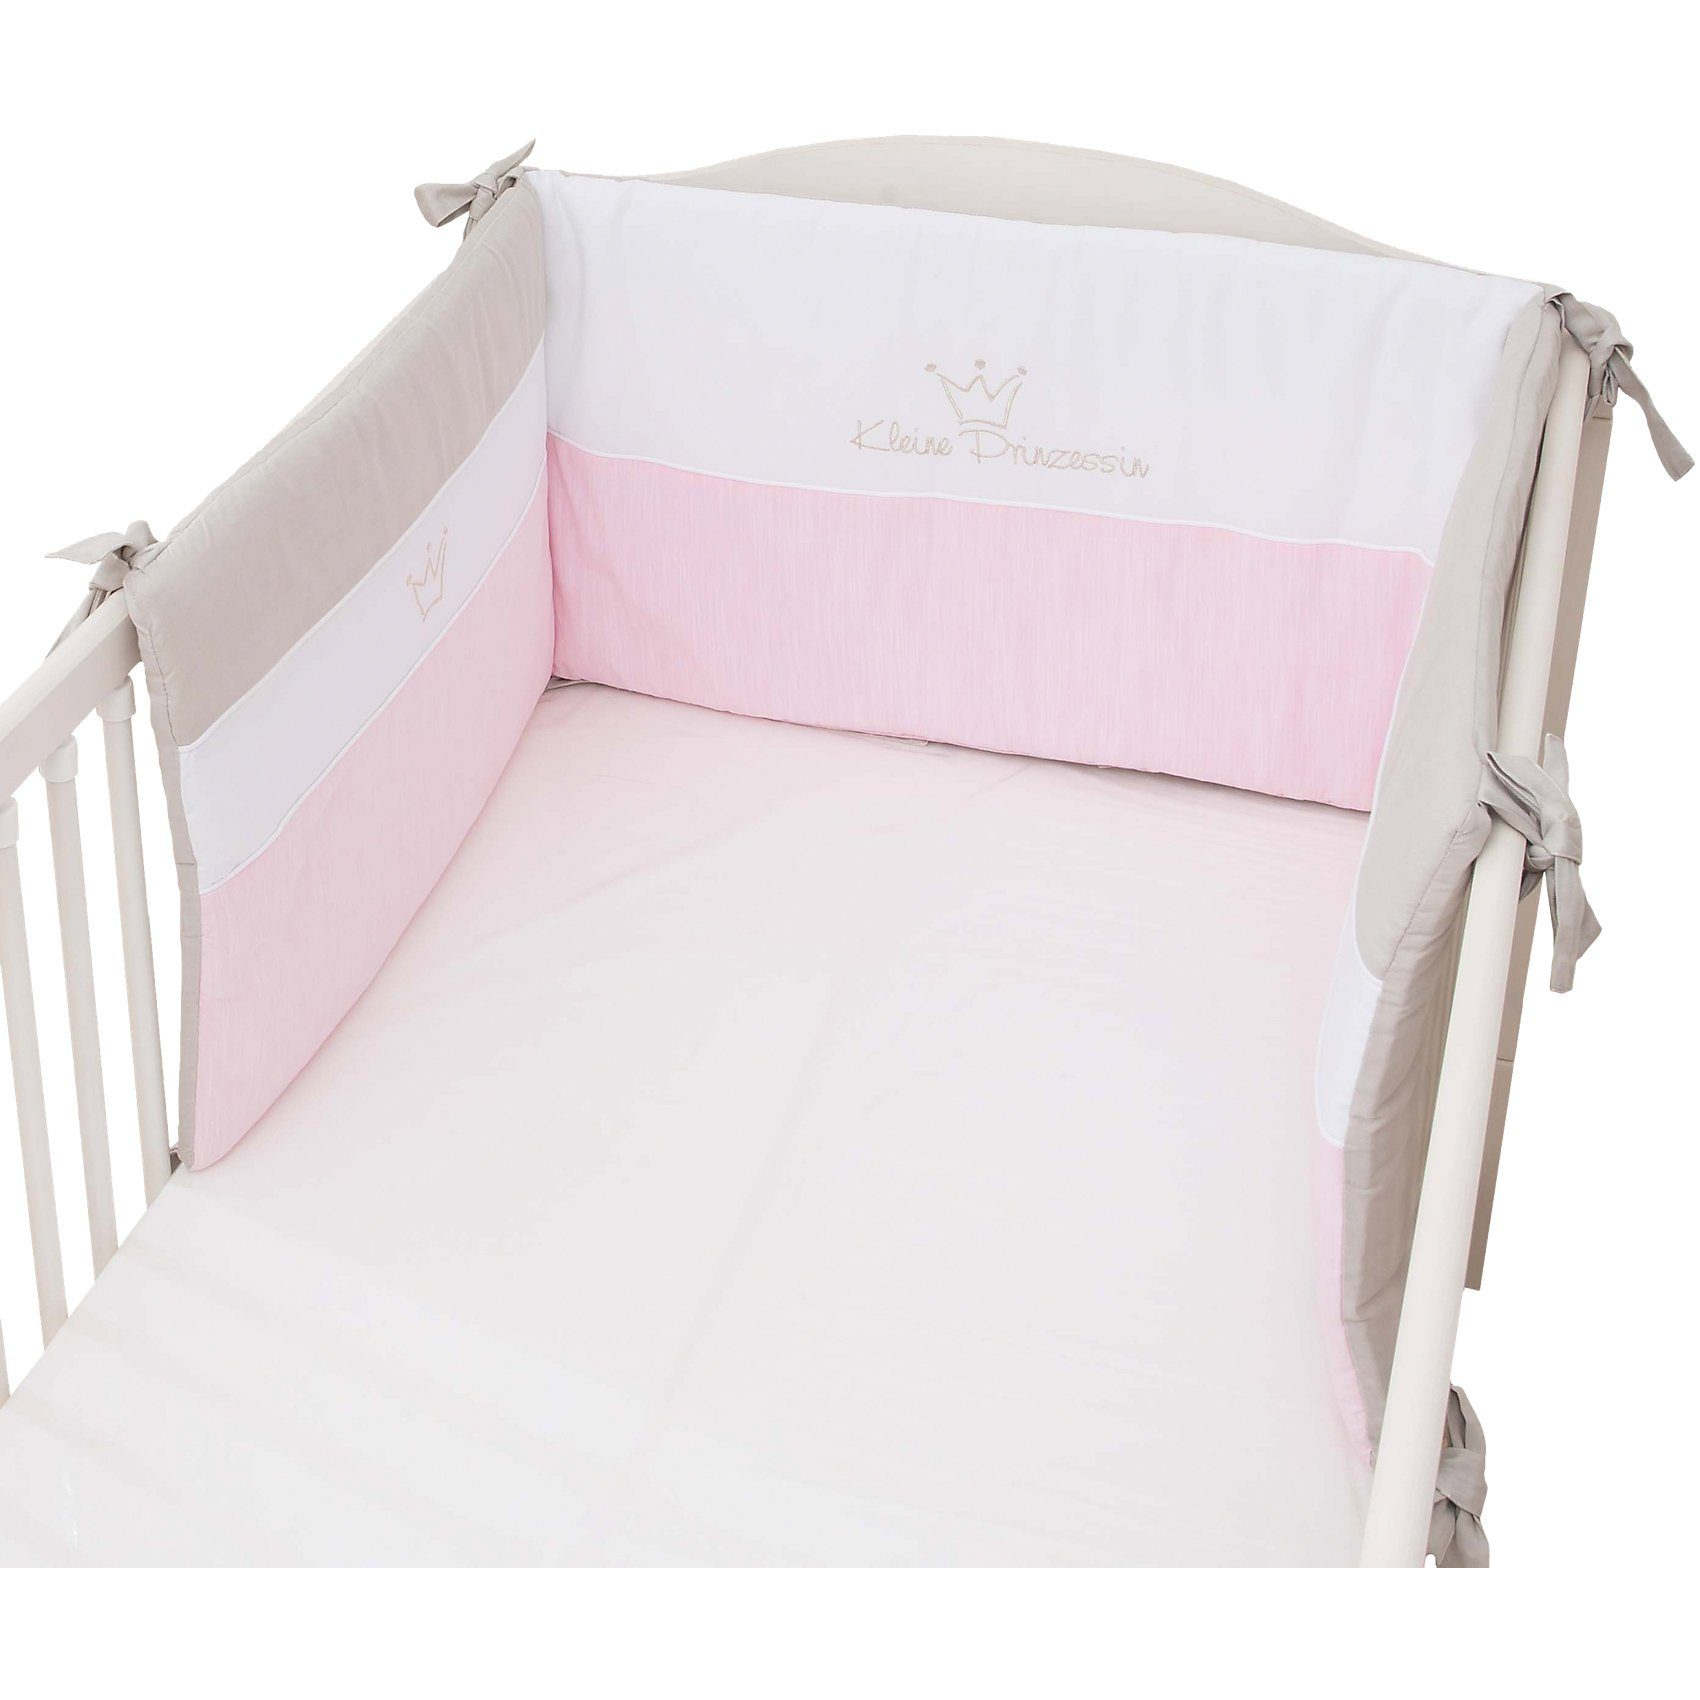 Be Be's Collection Nestchen Kleine Prinzessin (neu), rosa, 40 x 190 cm